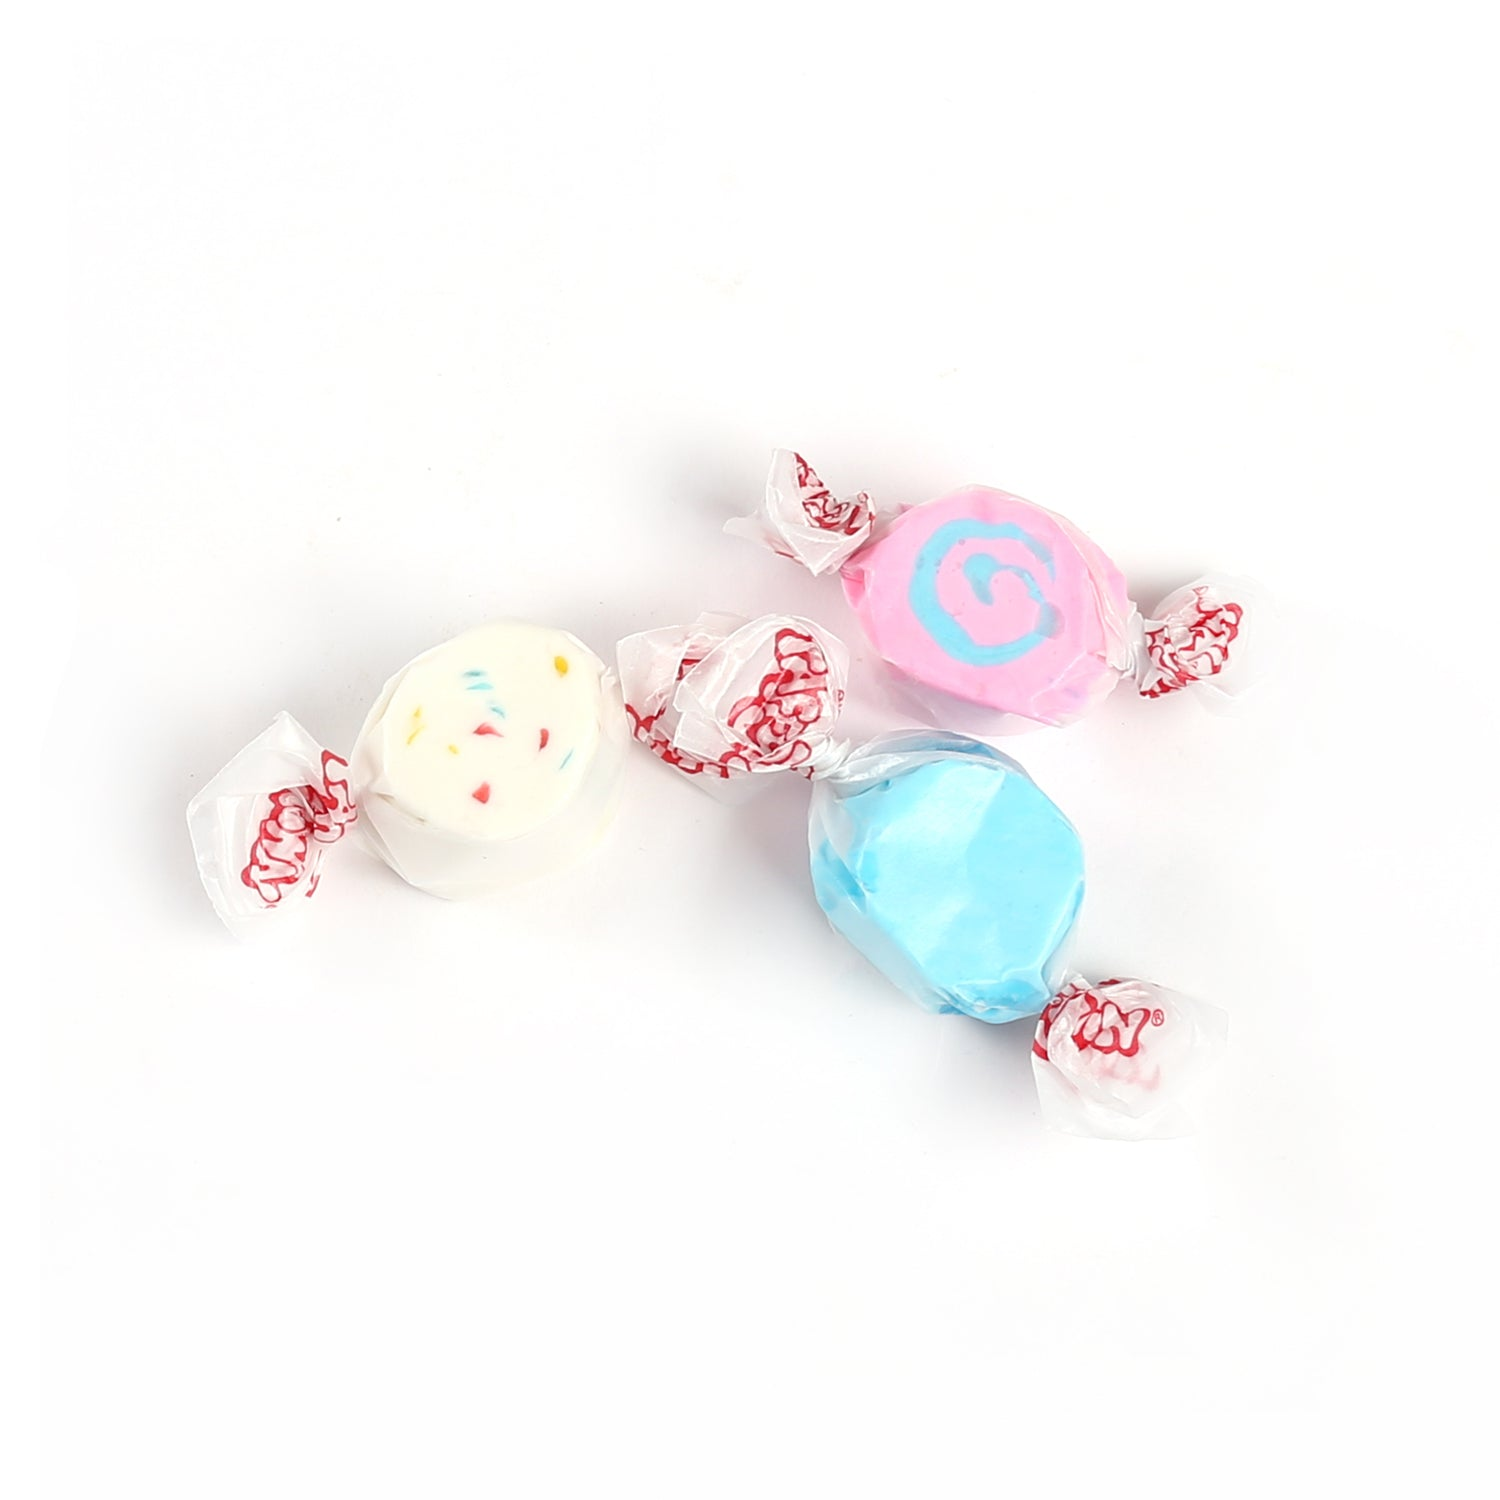 Product photo of saltwater taffy. An assortment of bright coloured taffy